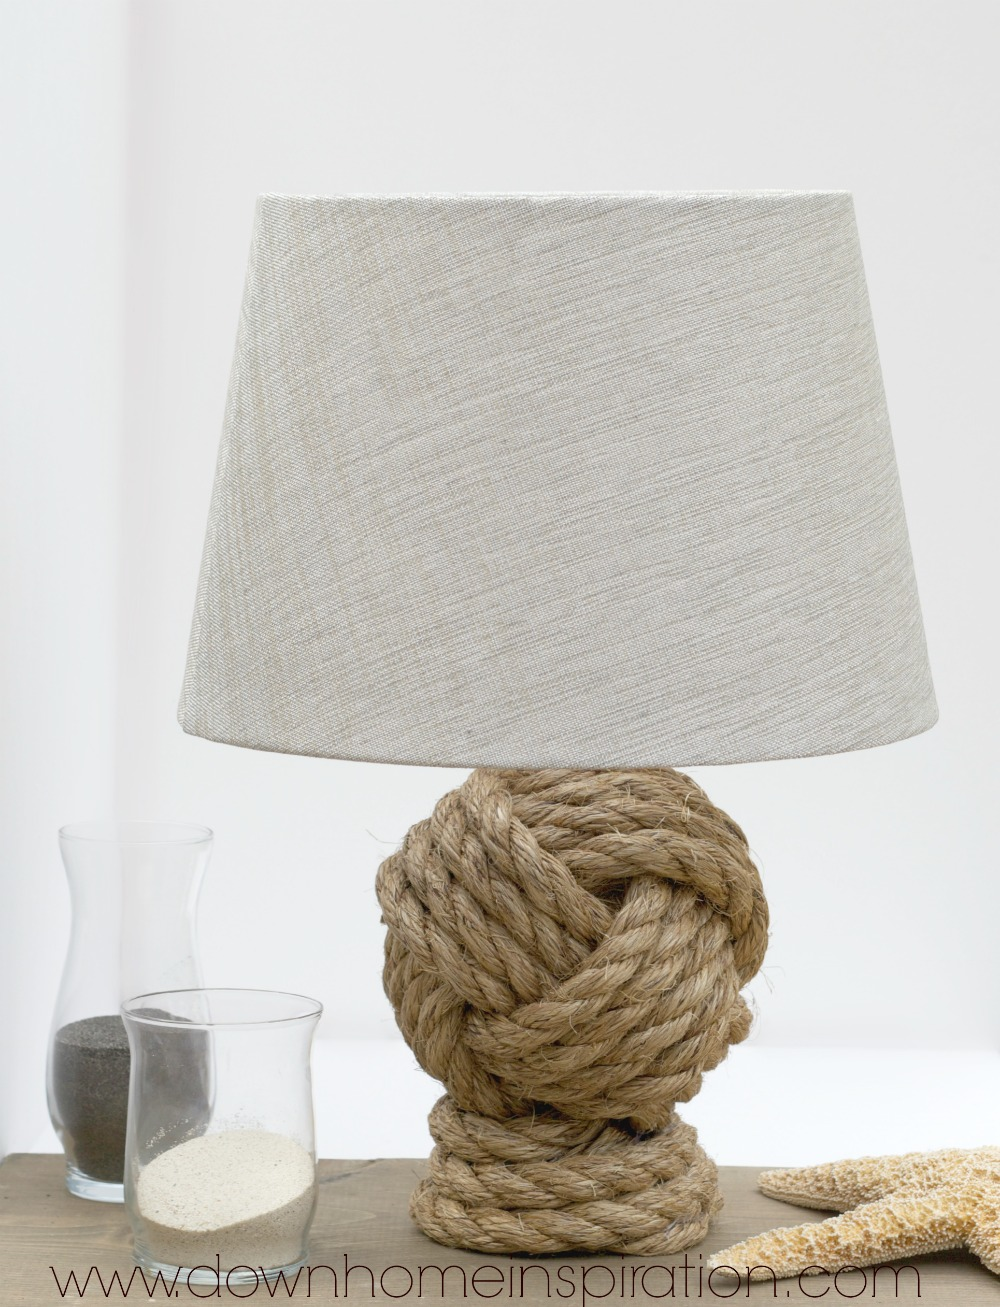 Pottery Barn Knockoff Rope Knot Lamp Down Home Inspiration Wiring A 18